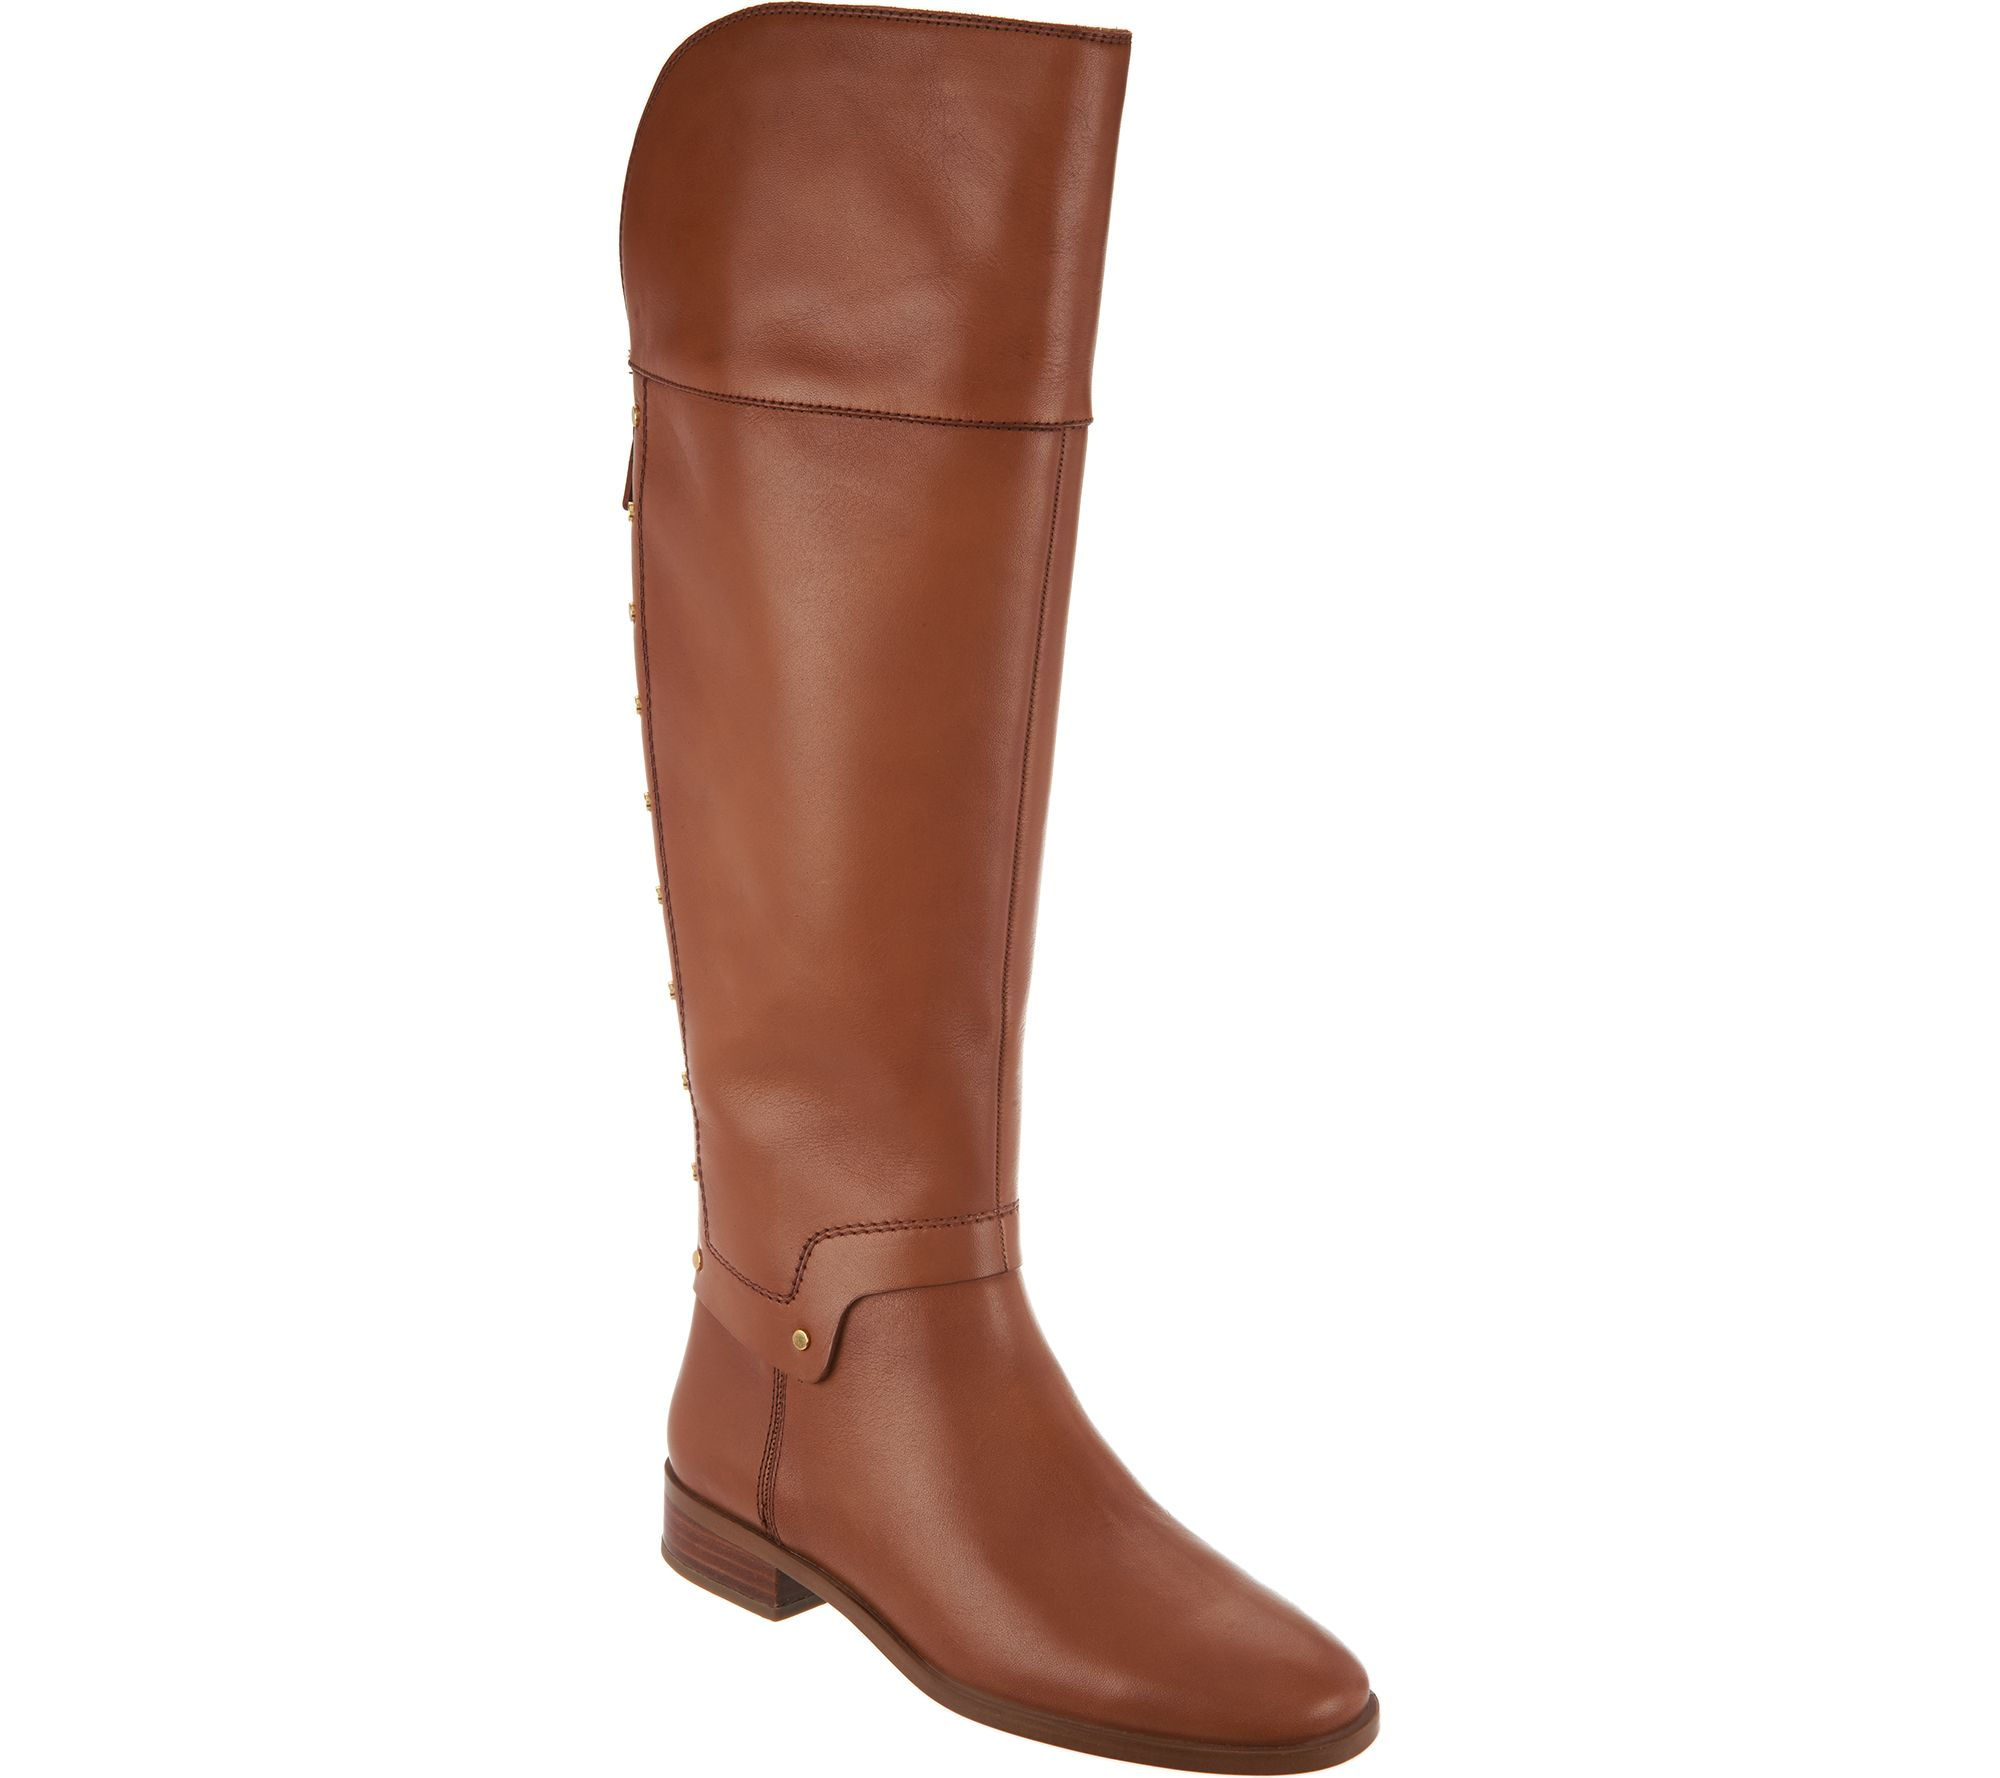 899d40cf497 Franco Sarto Leather Tall Shaft Boots - Roxanna - Page 1 — QVC.com